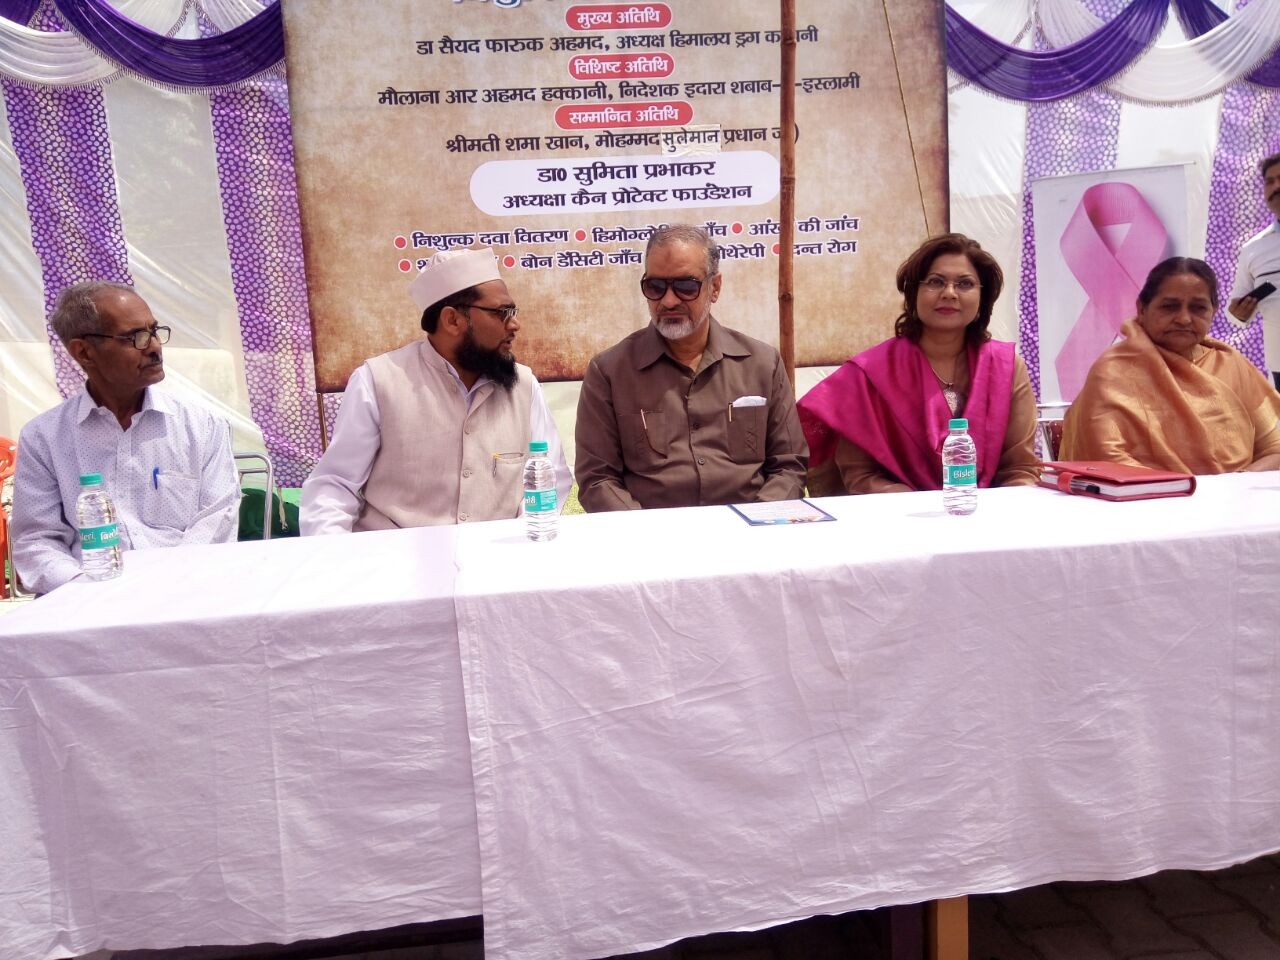 Can Protect Foundation organized free medical camp in